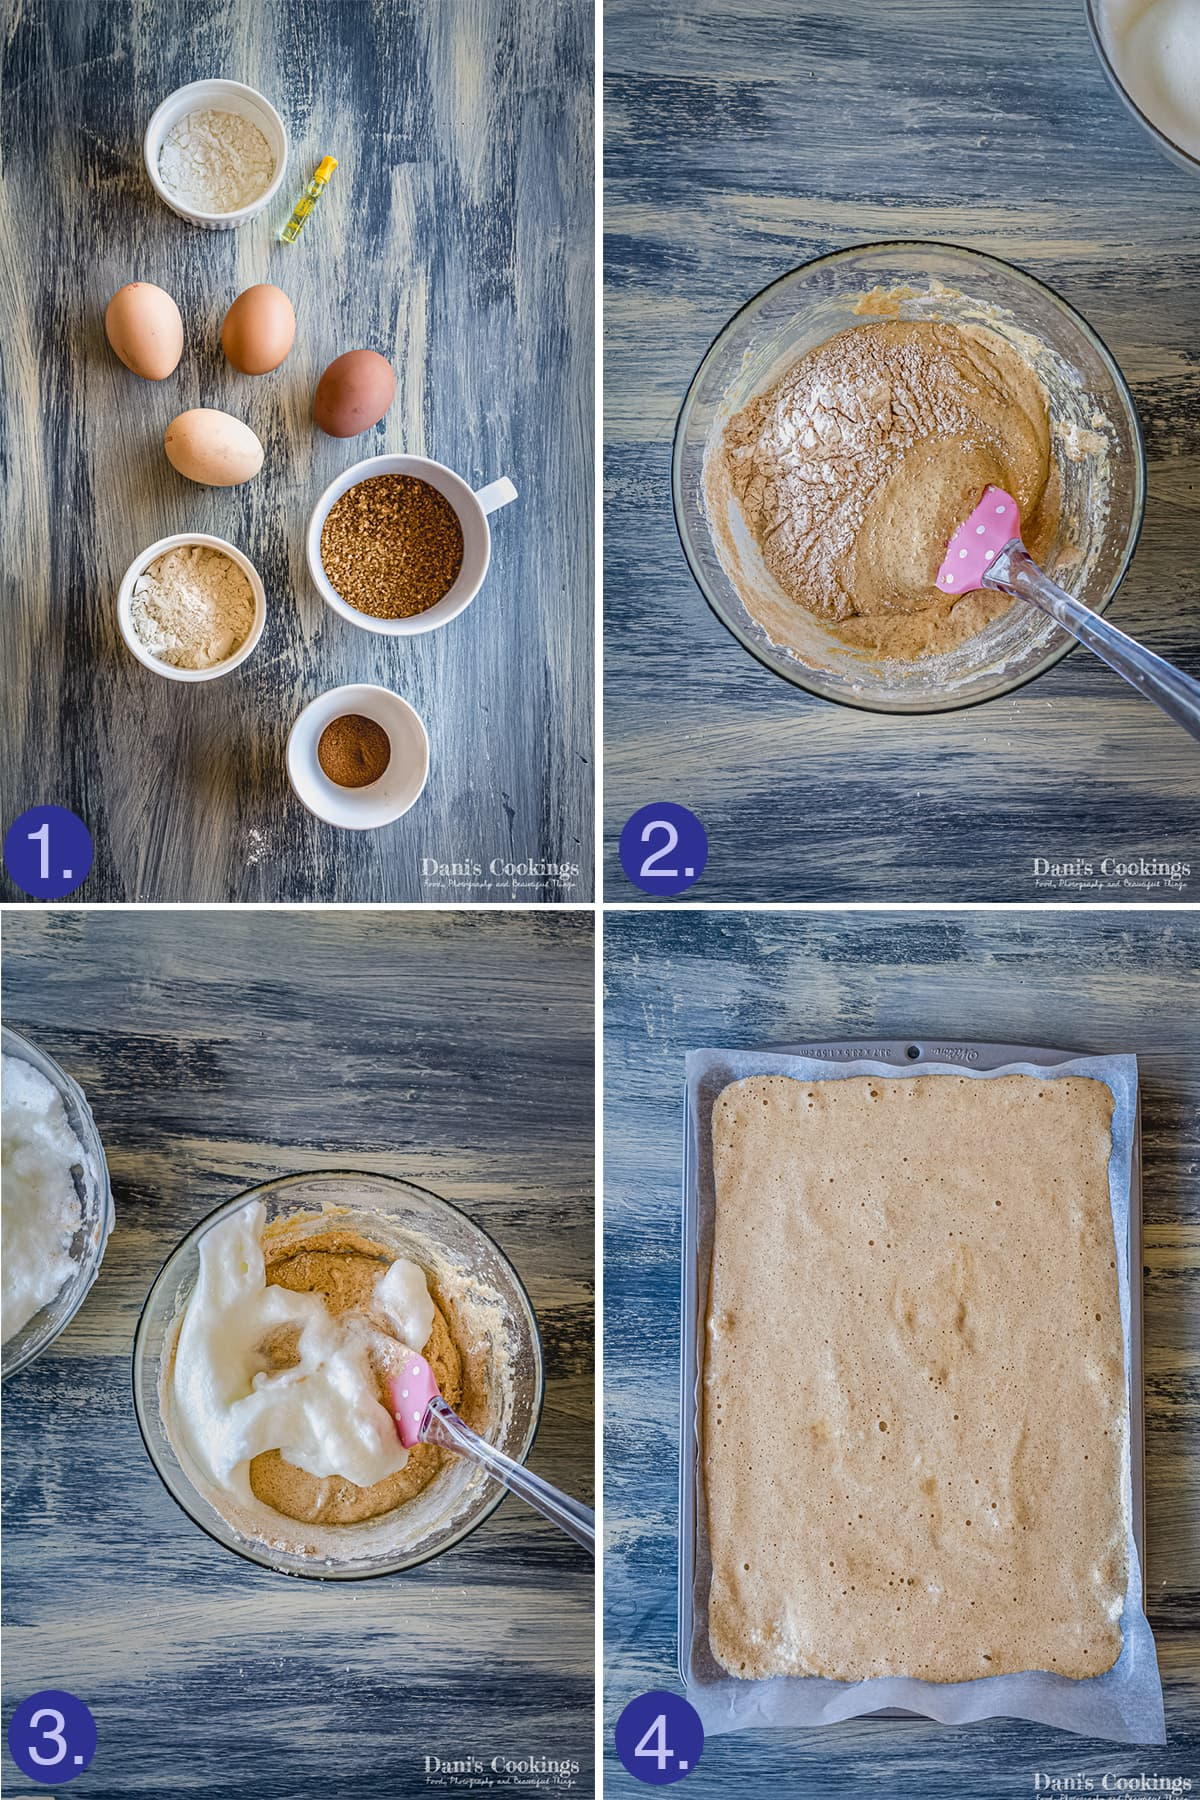 ingredients and steps to make the layers